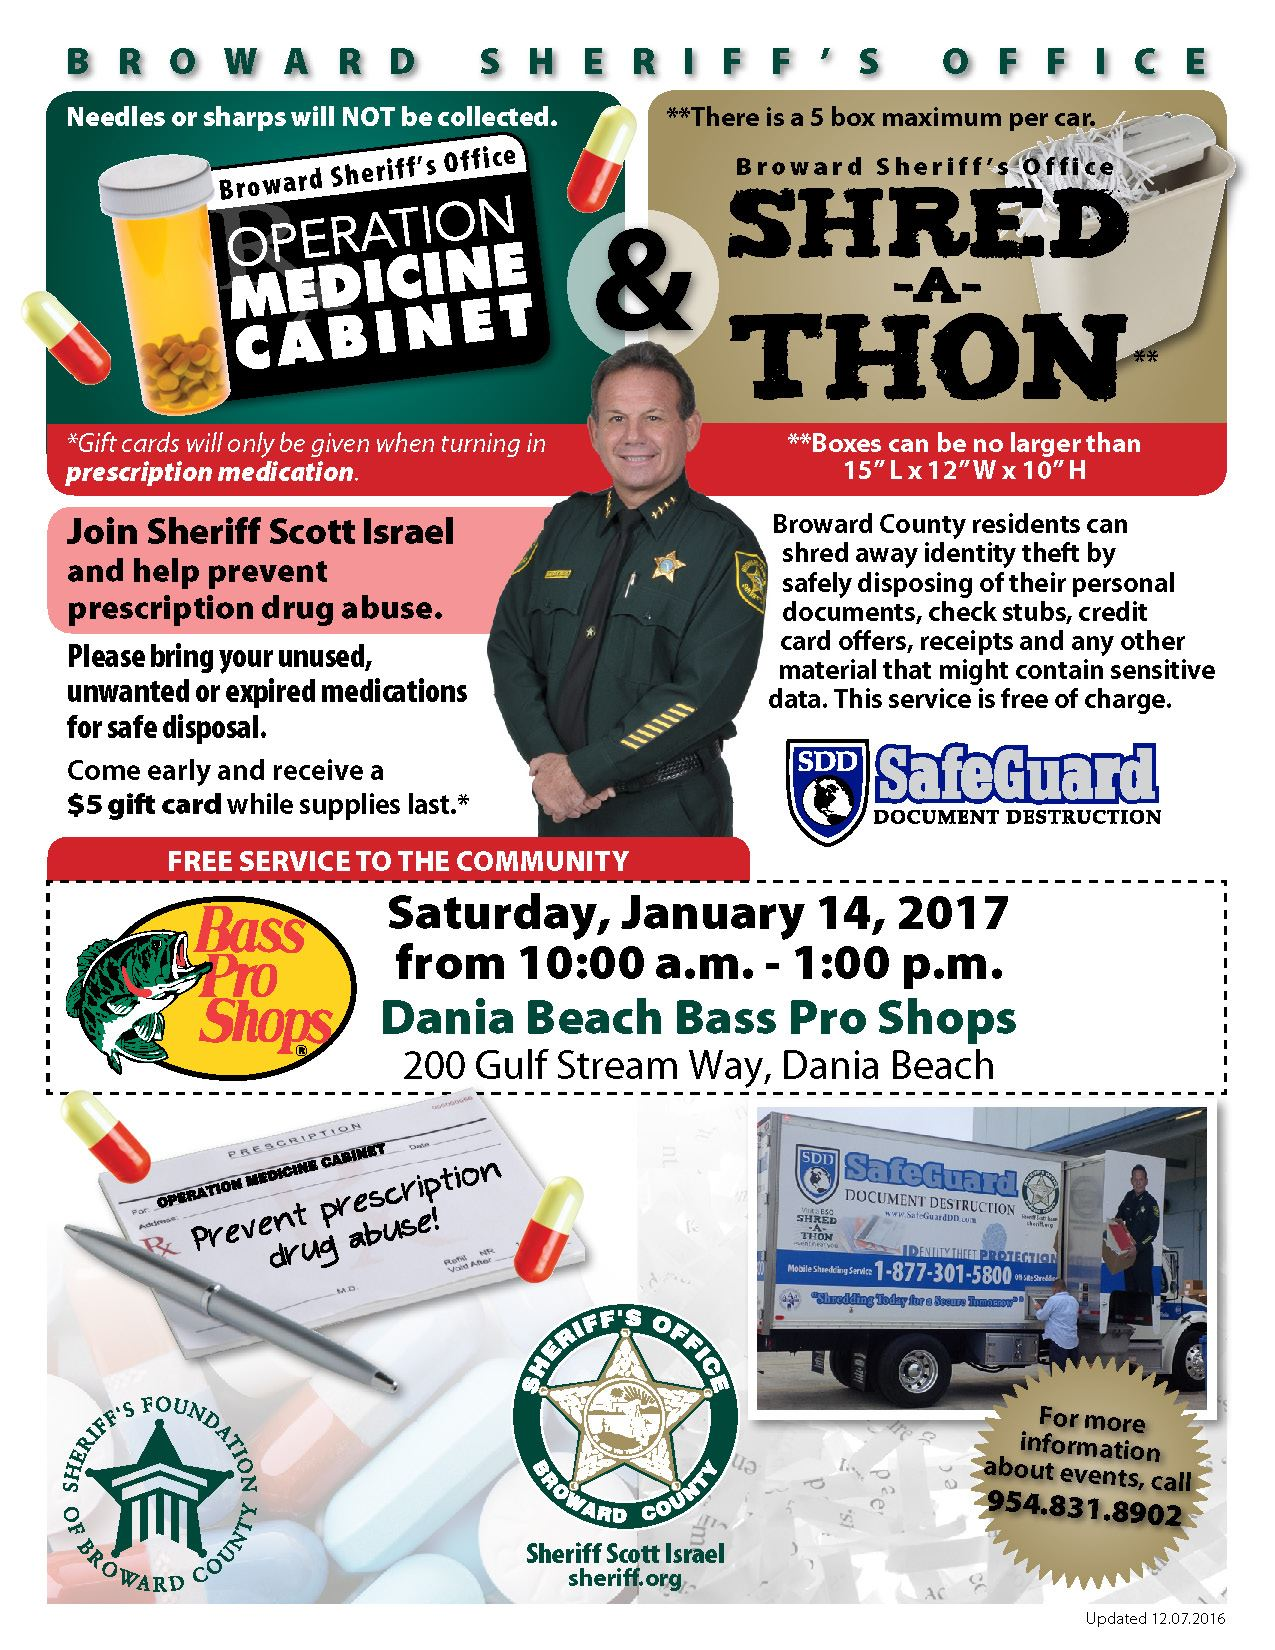 Shred-a-Thon & Operation Medicine Cabinet January 14th @ Bass Pro Shops  10 a.m. to 1 p.m.